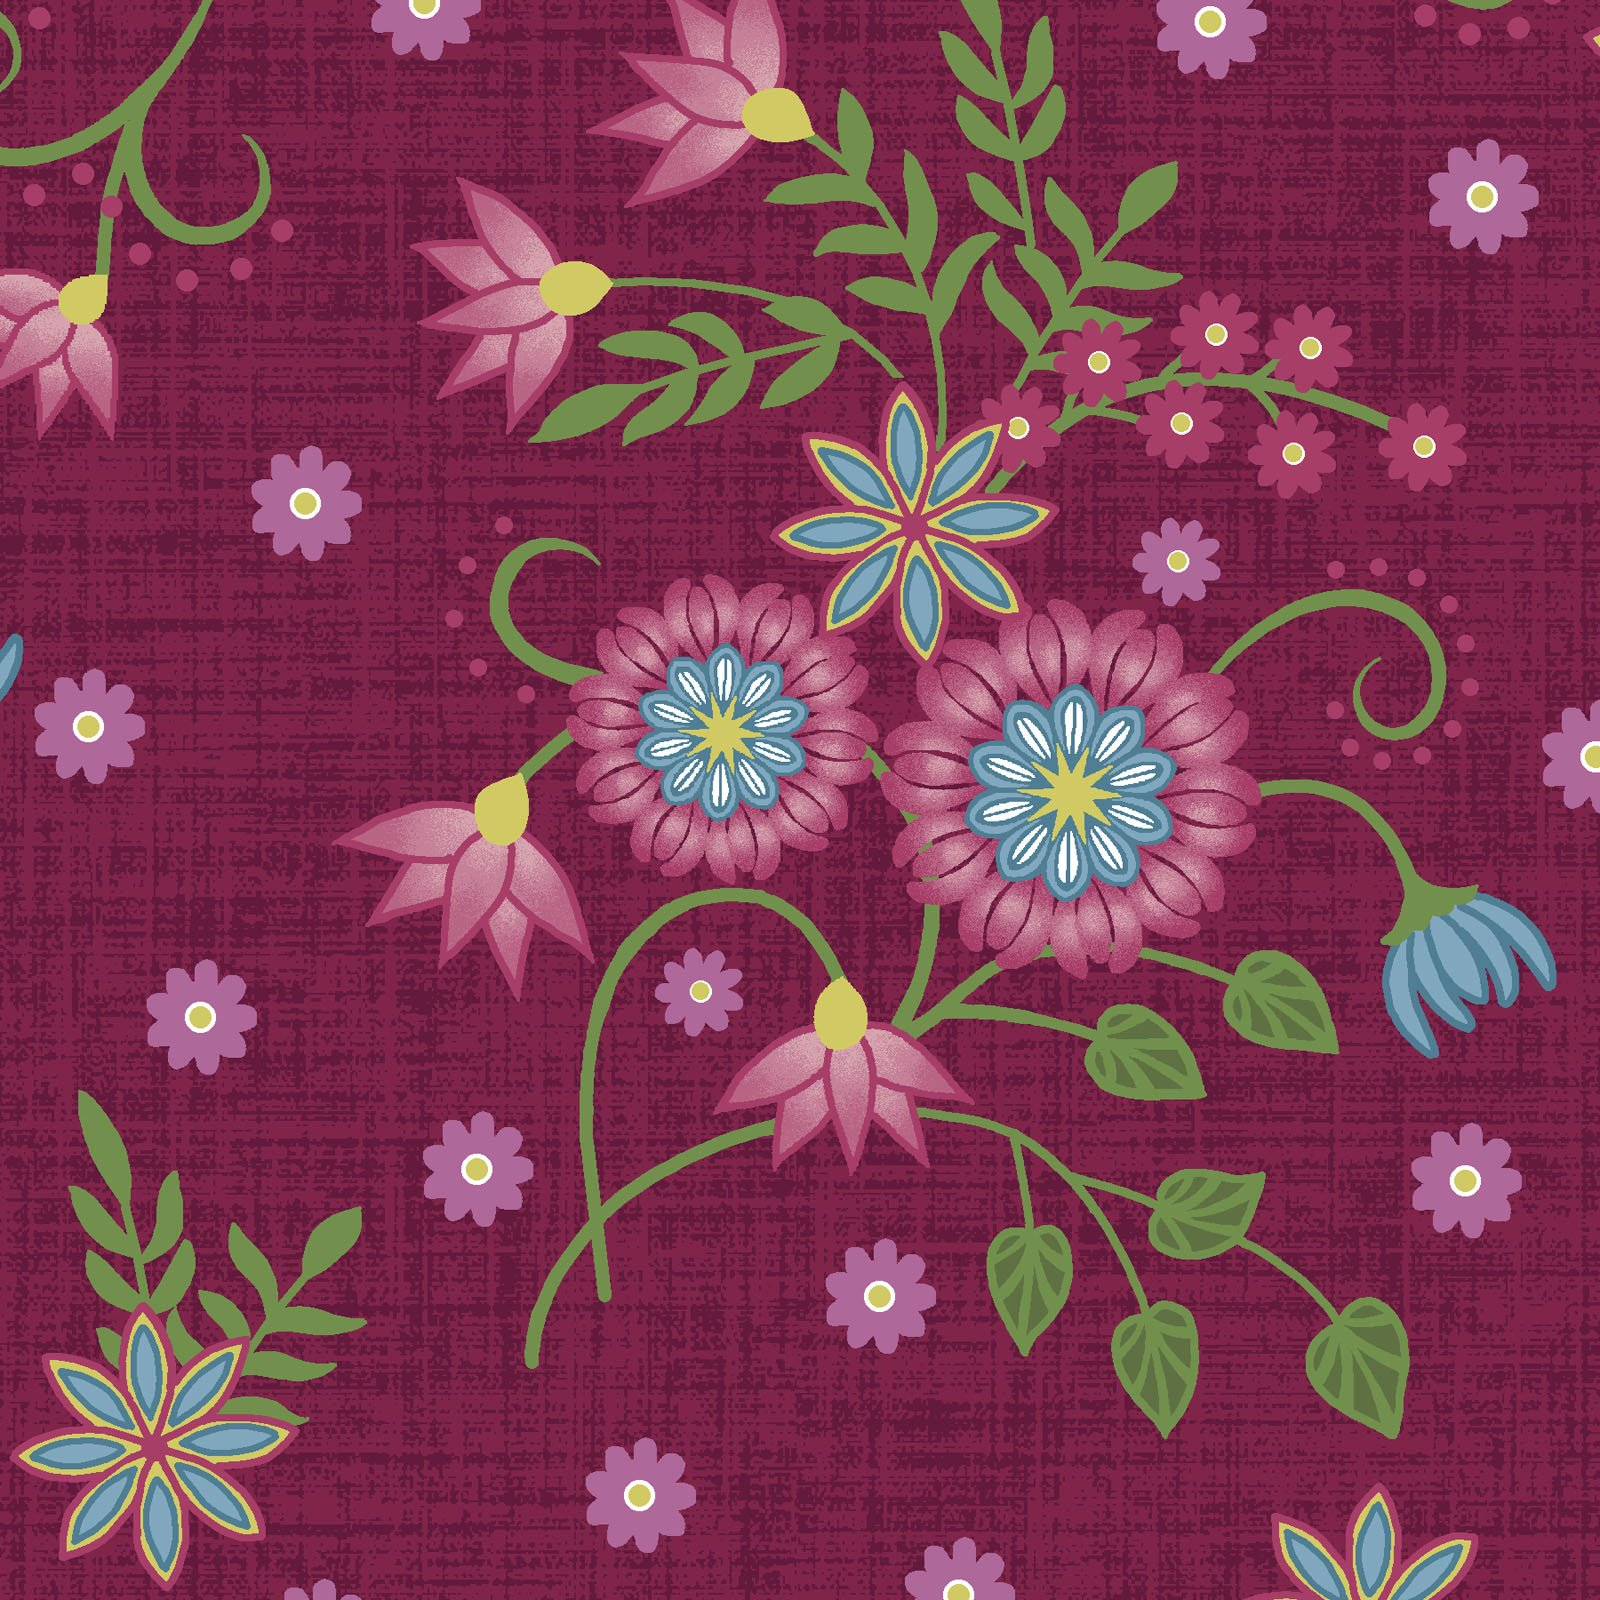 EESC-9881 R - FLOWER & VINE BY MONIQUE JACOBS FLORAL ALLOVER RED - ARRIVING MARCH 2021